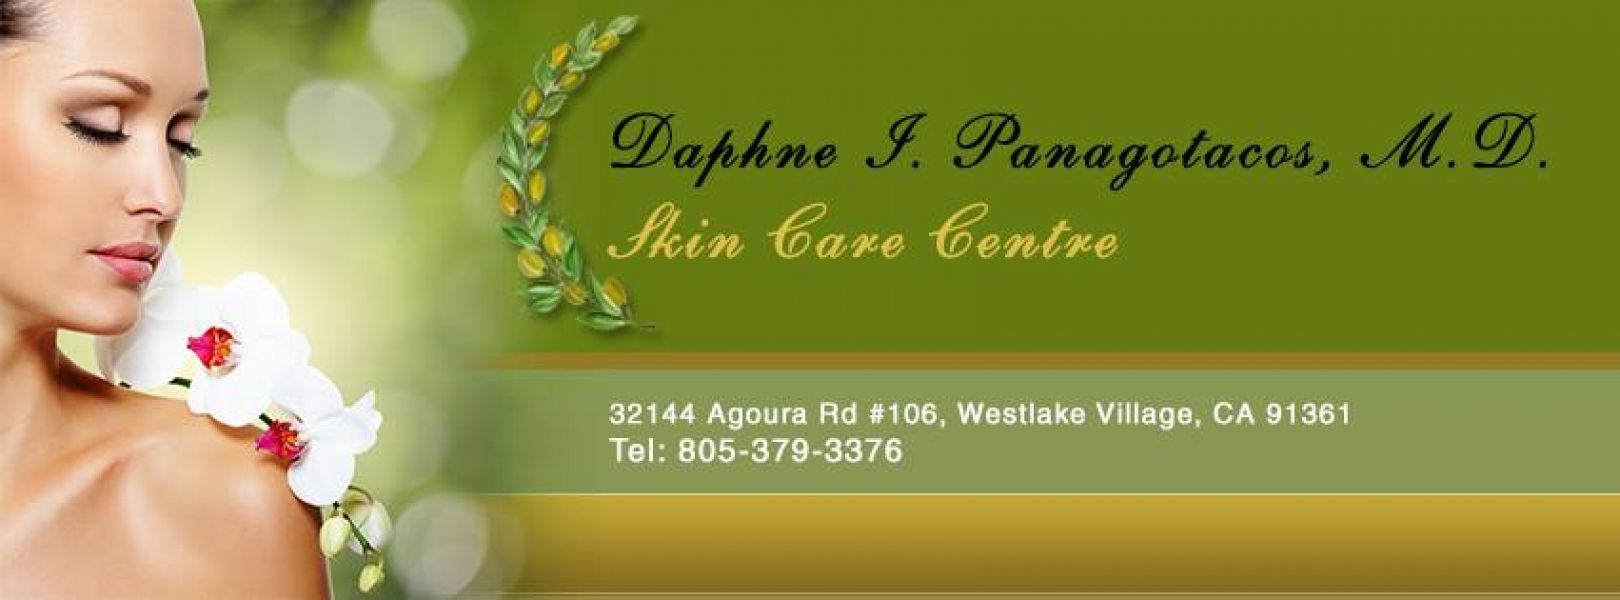 Affordable Botox in Thousand oaks